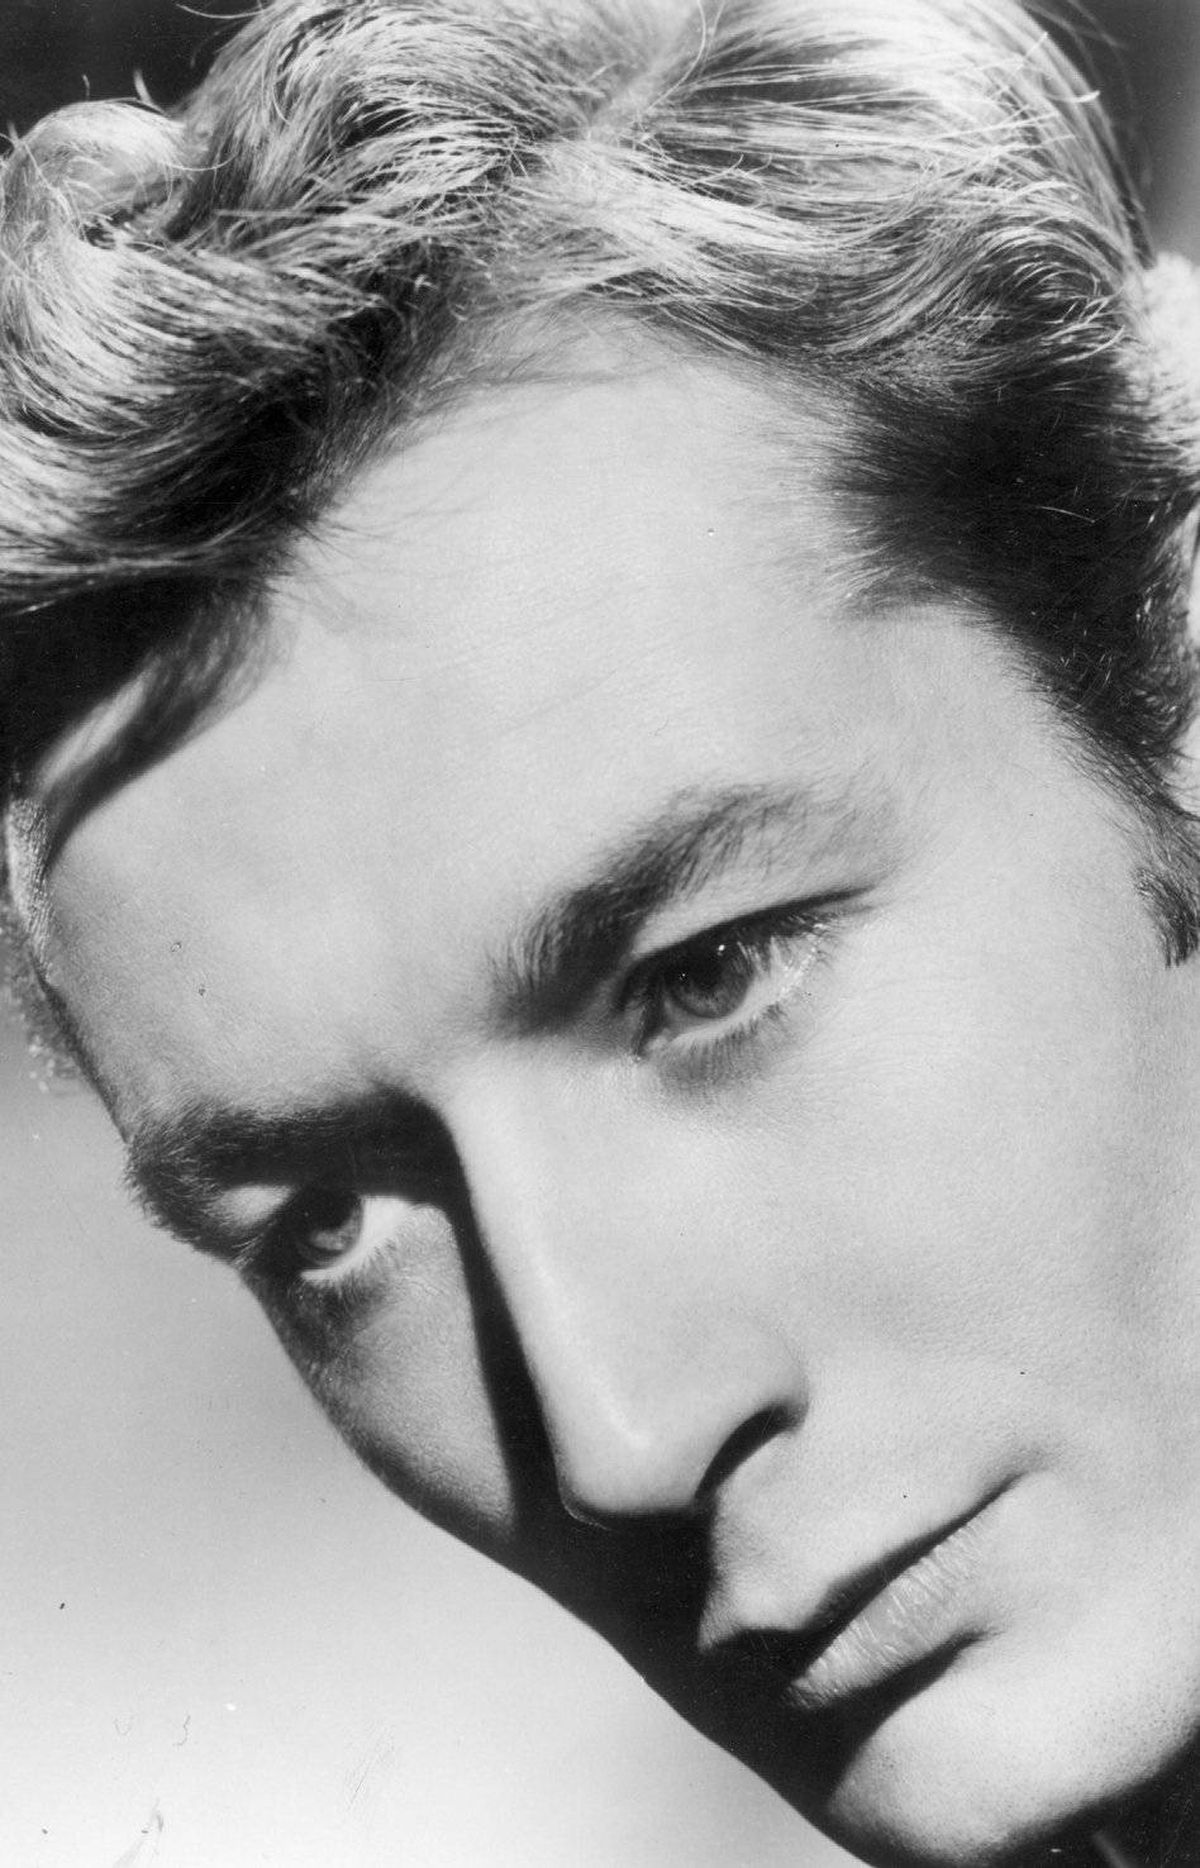 Actor John Neville dies of Alzheimer's at age 86 He drank with Richard Burton, played Hamlet opposite Judi Dench and, after emigrating to Canada in 1972, the stately and charismatic English actor directed prominent theatre companies here. He was also the Well-Manicured Man on TV's The X-Files, a role for which he was well-suited.